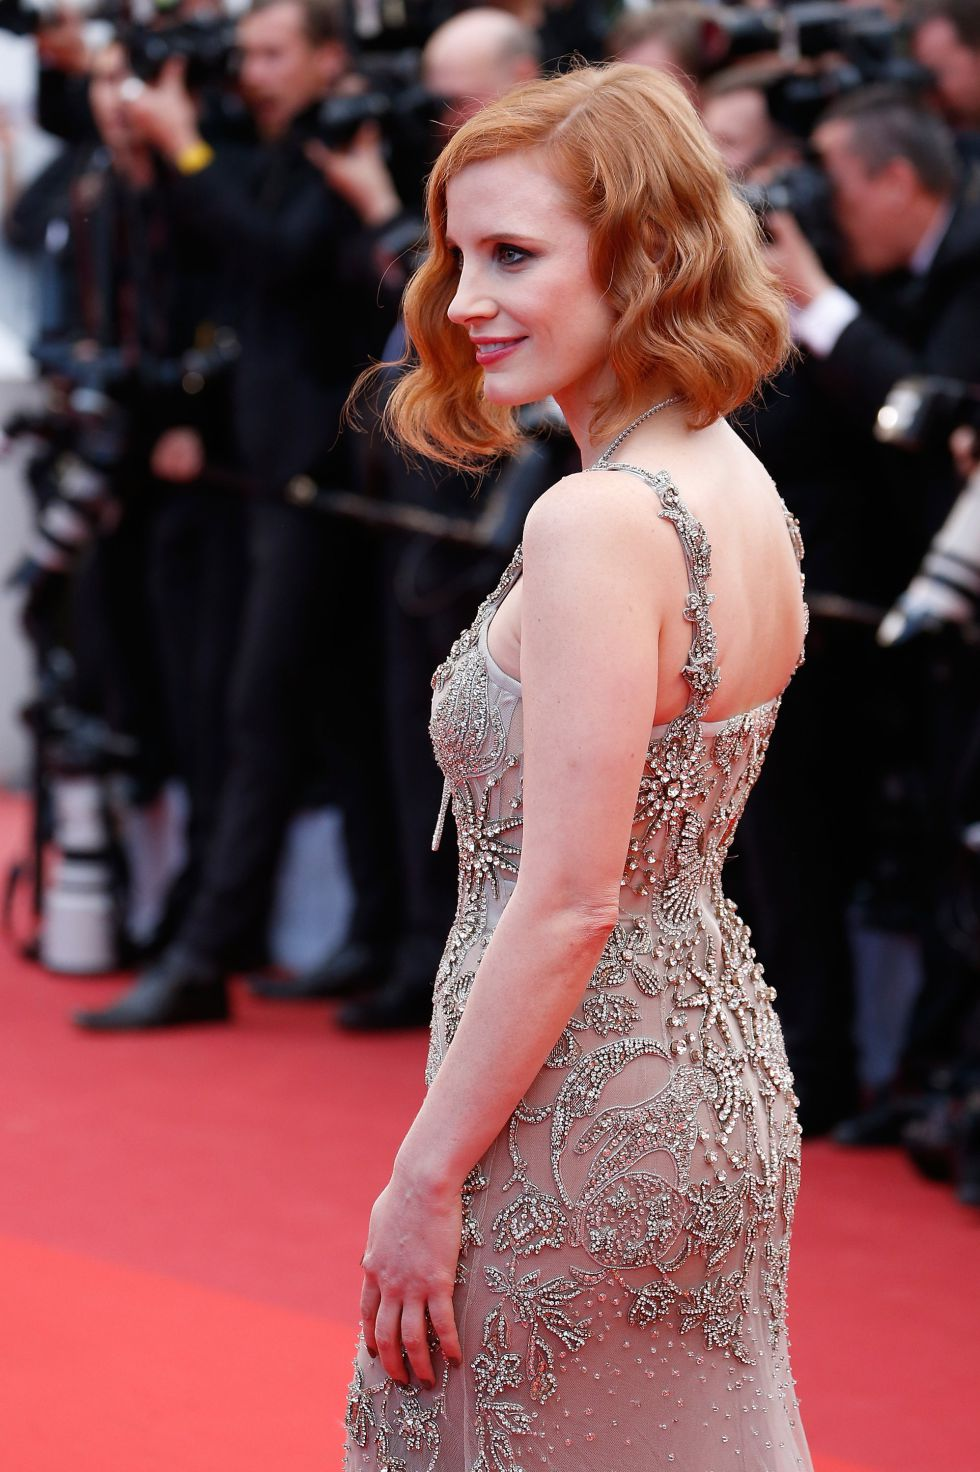 """CANNES, FRANCE - MAY 12: Jessica Chastain attends the screening of """"Money Monster"""" at the annual 69th Cannes Film Festival at Palais des Festivals on May 12, 2016 in Cannes, France. (Photo by Luca Teuchmann/WireImage)"""